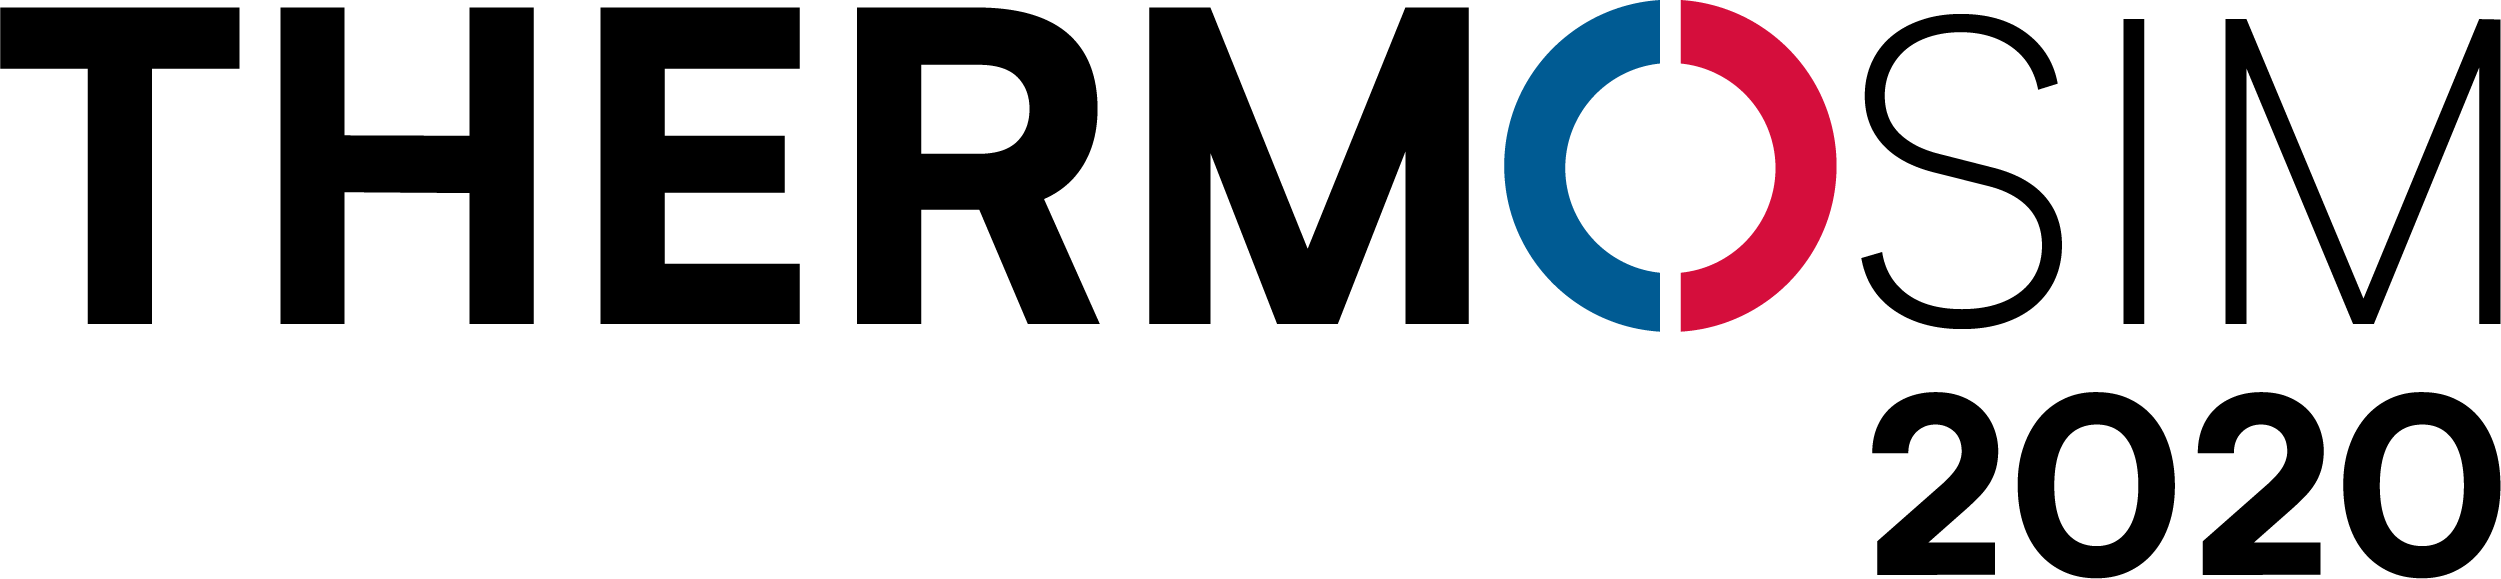 Logo Thermosim 2020